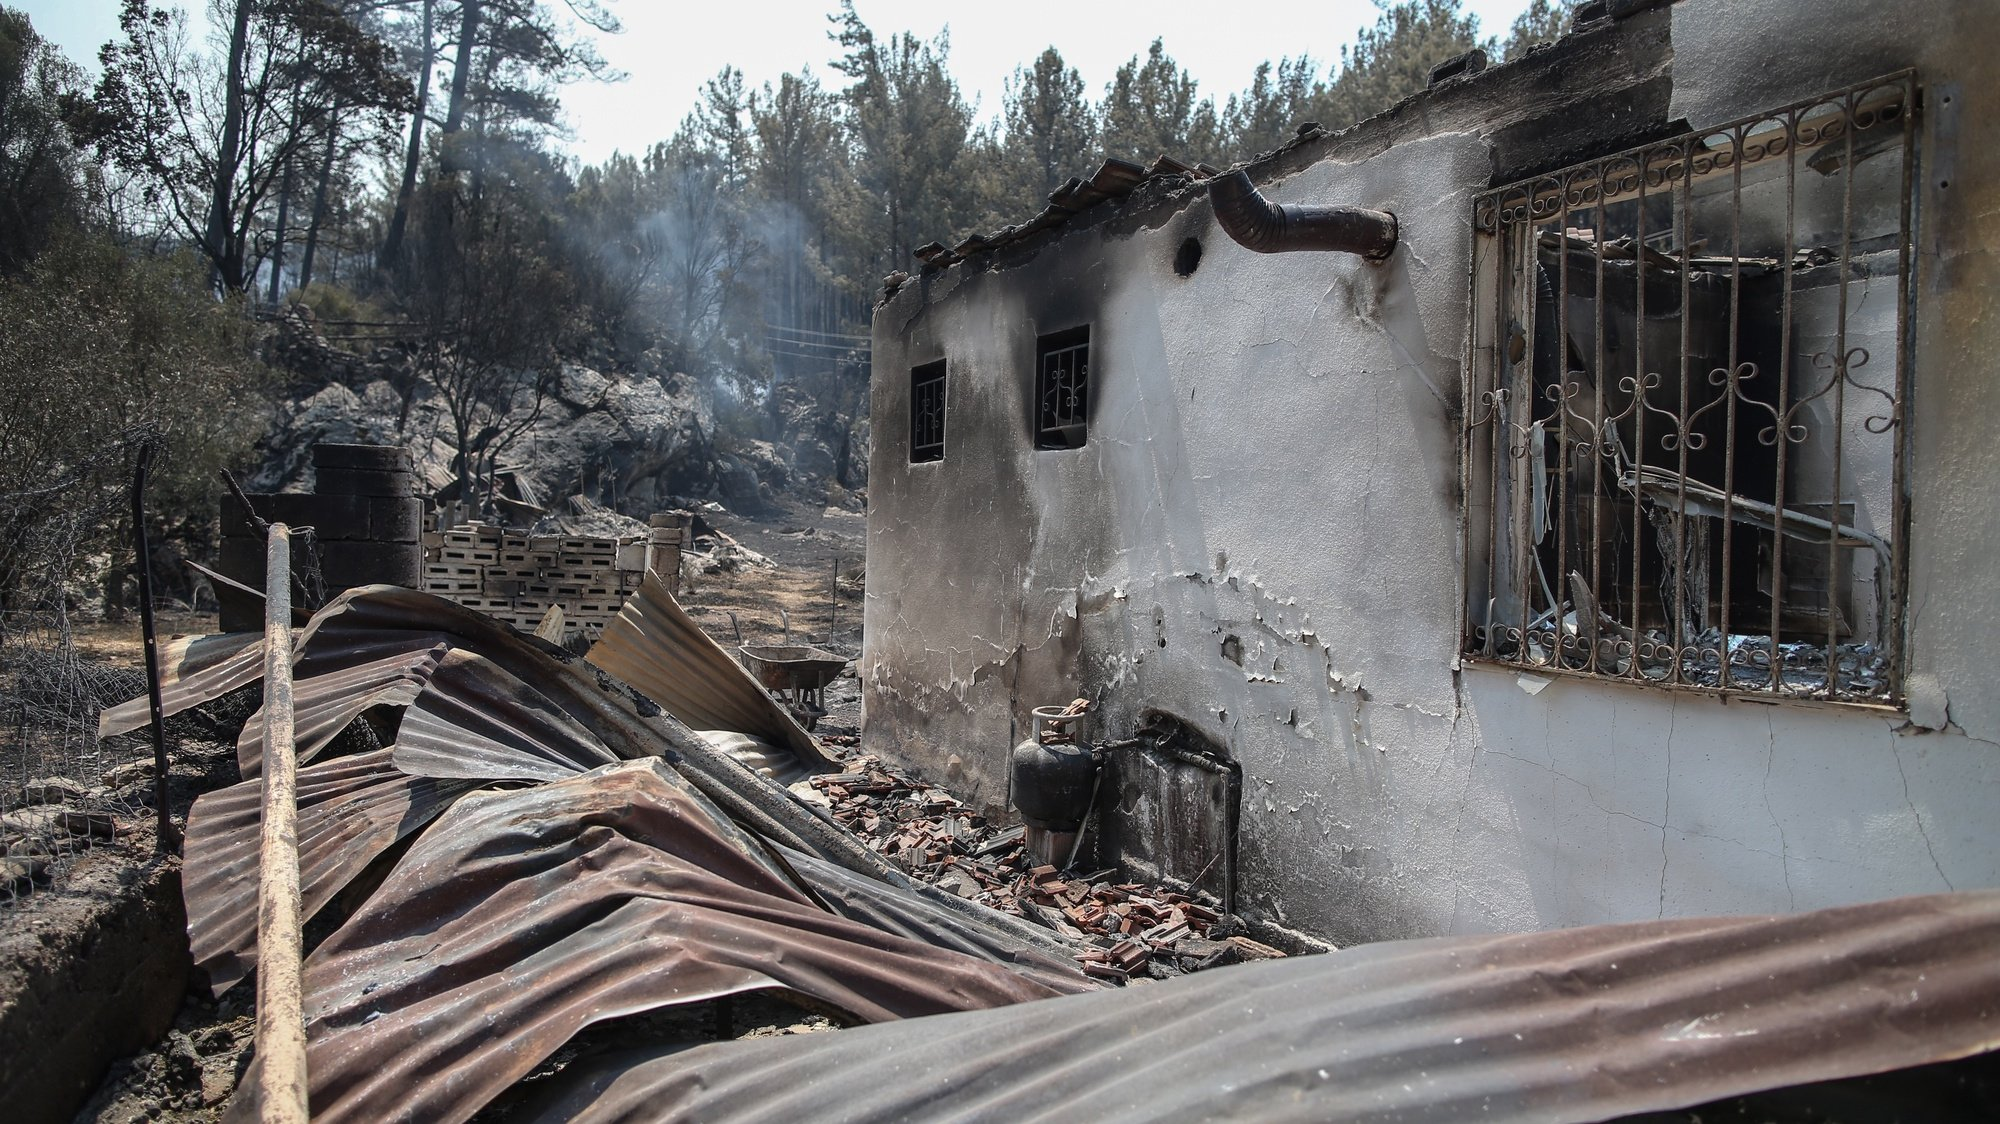 epa09382369 A view of a damaged house after a wildfire swept through at a rural of Marmaris district of Mugla, Turkey, 31 July 2021. According to a statement by the Turkish government's Disaster and Emergency Management Presidency (AFAD) released on 30 July 2021, at least three people lost their lives and some 271 others were affected by blazes that swept through the country's southern coast.  EPA/ERDEM SAHIN